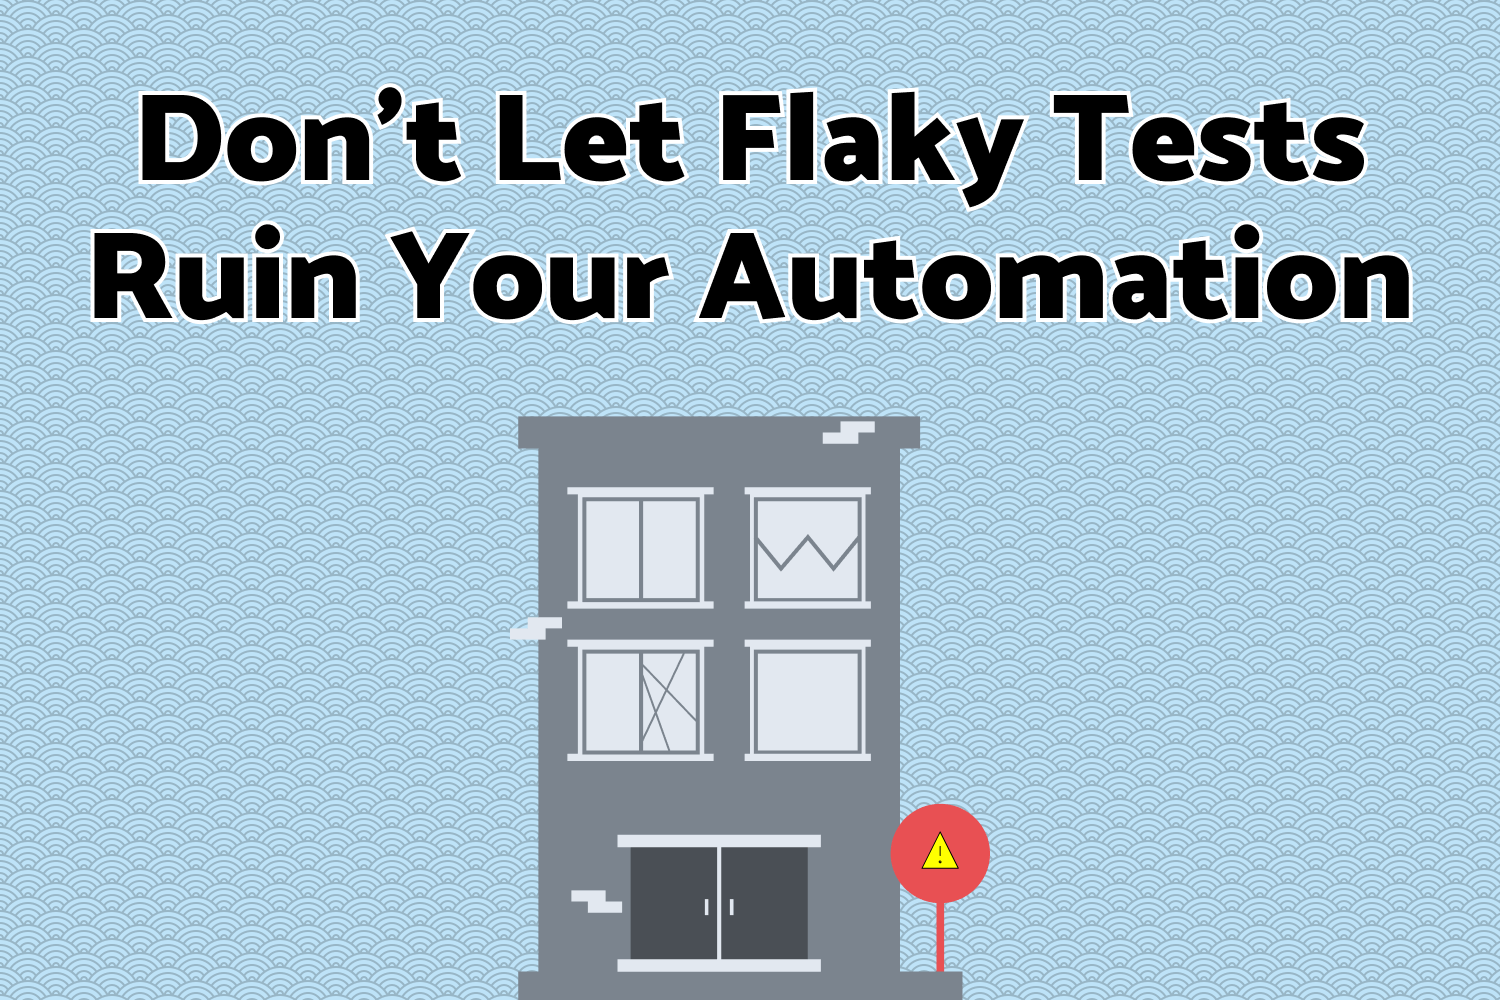 Don't Let Flaky Tests Ruin Your Automation